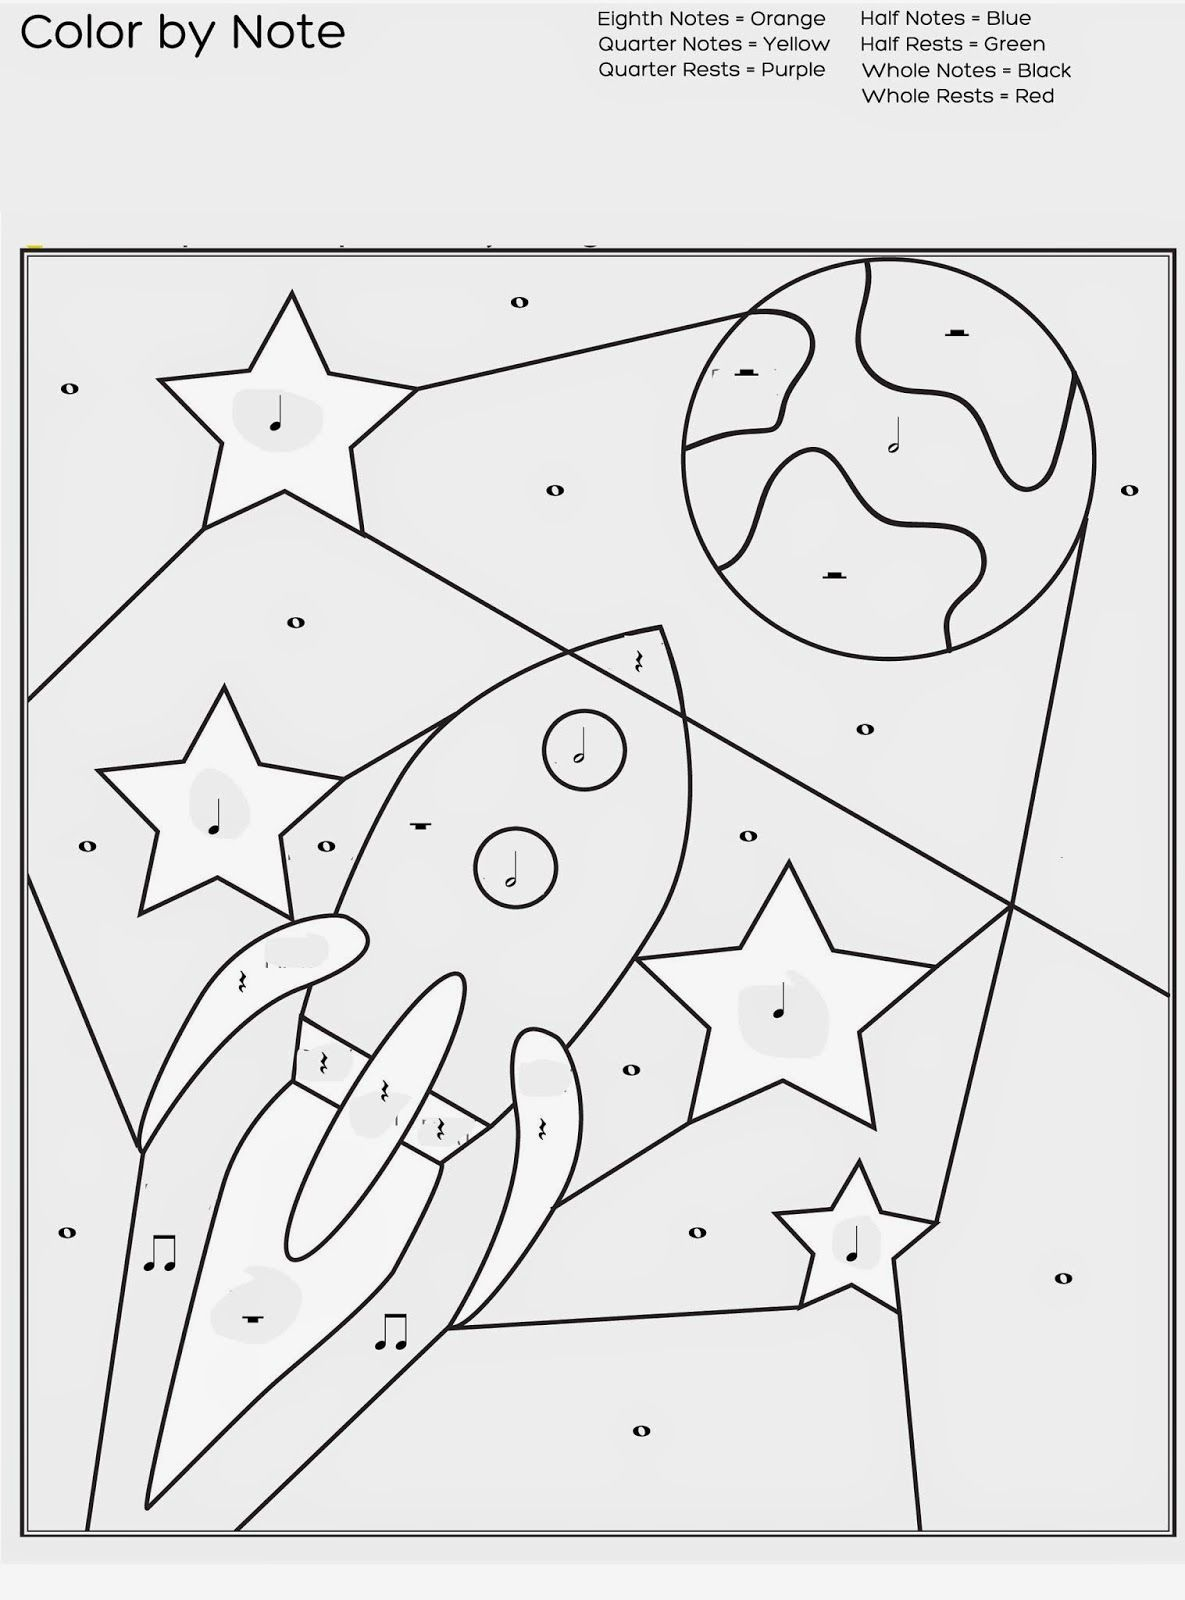 Free Printable Color By Note Worksheet For Music Lessons